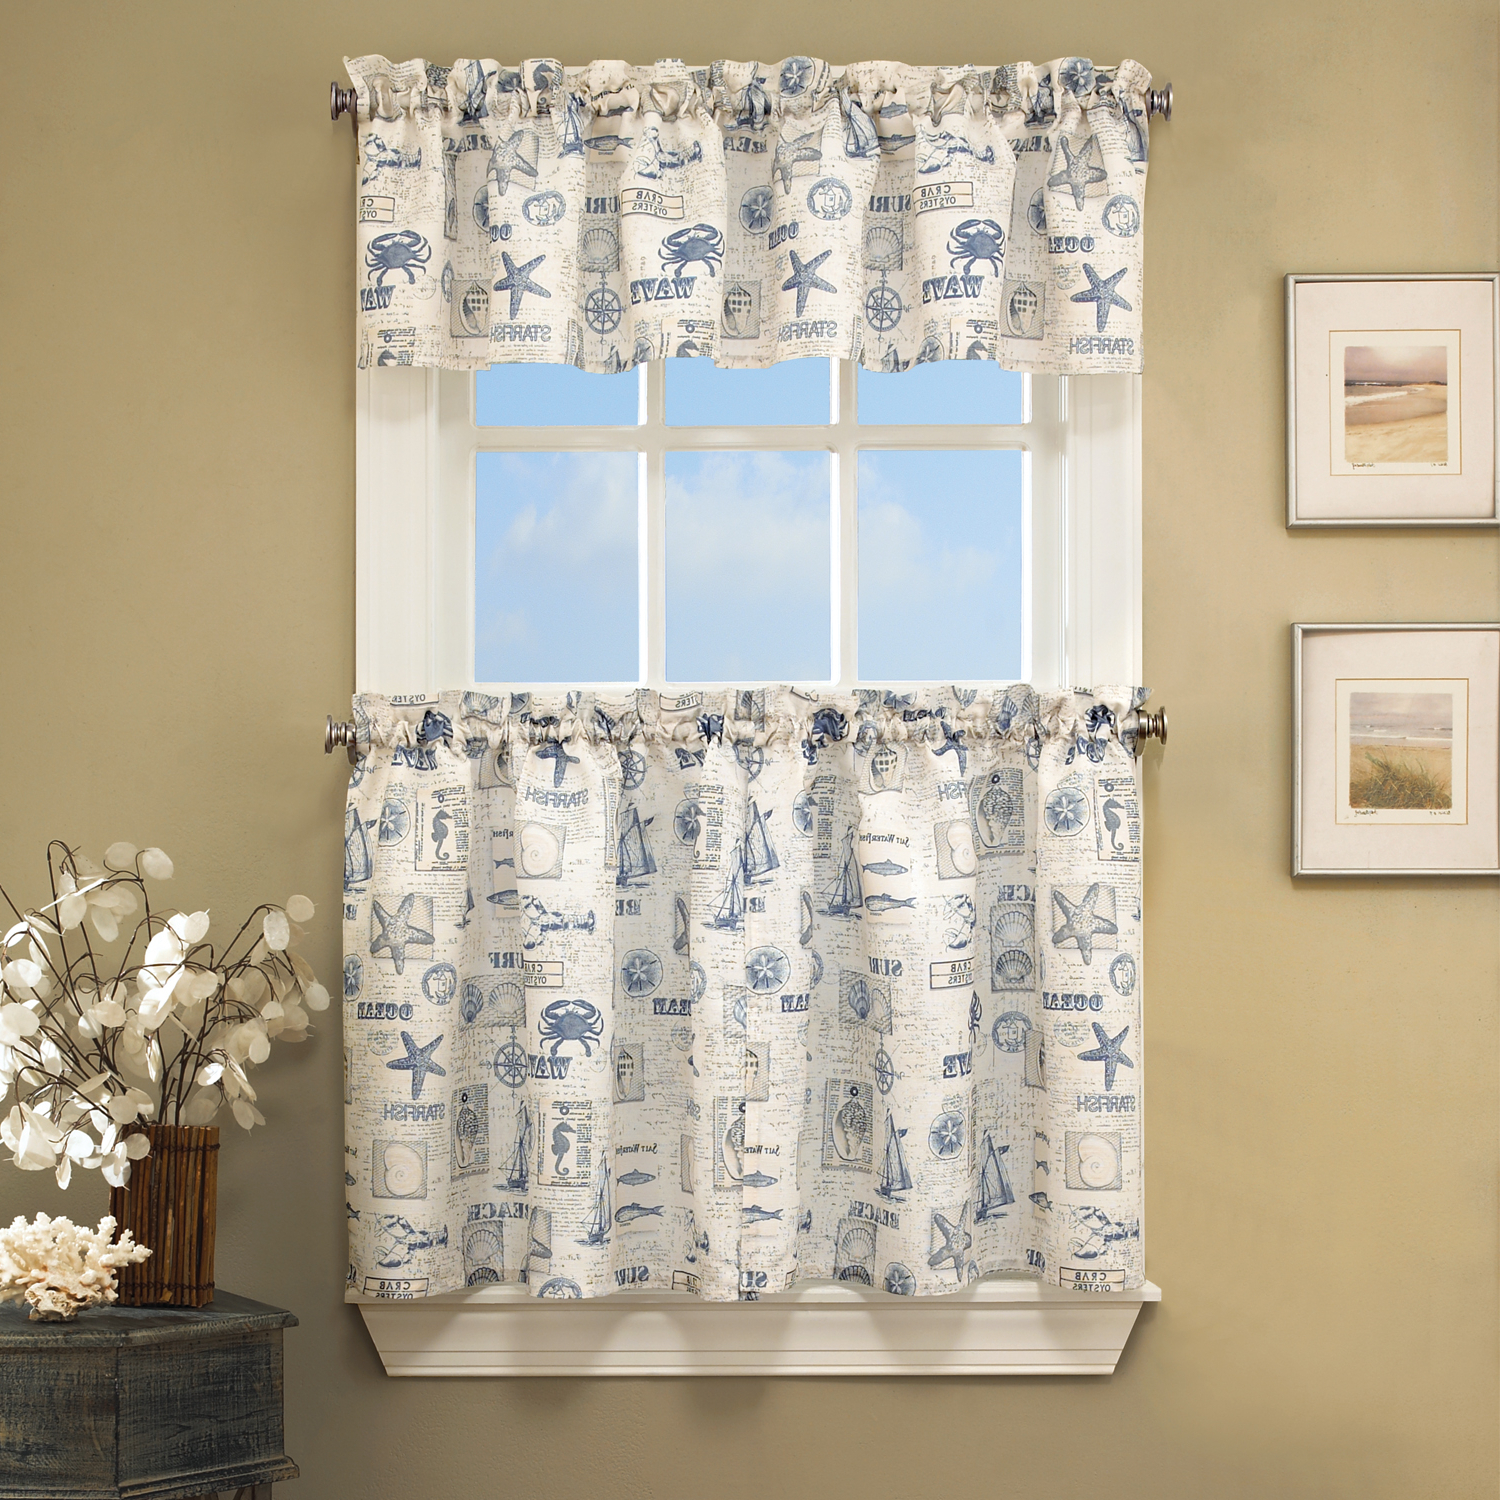 Latest Details Aboutthe Sea Printed Ocean Beach Images Kitchen Curtains Tiers Or Valance Inside Coastal Tier And Valance Window Curtain Sets (View 8 of 20)